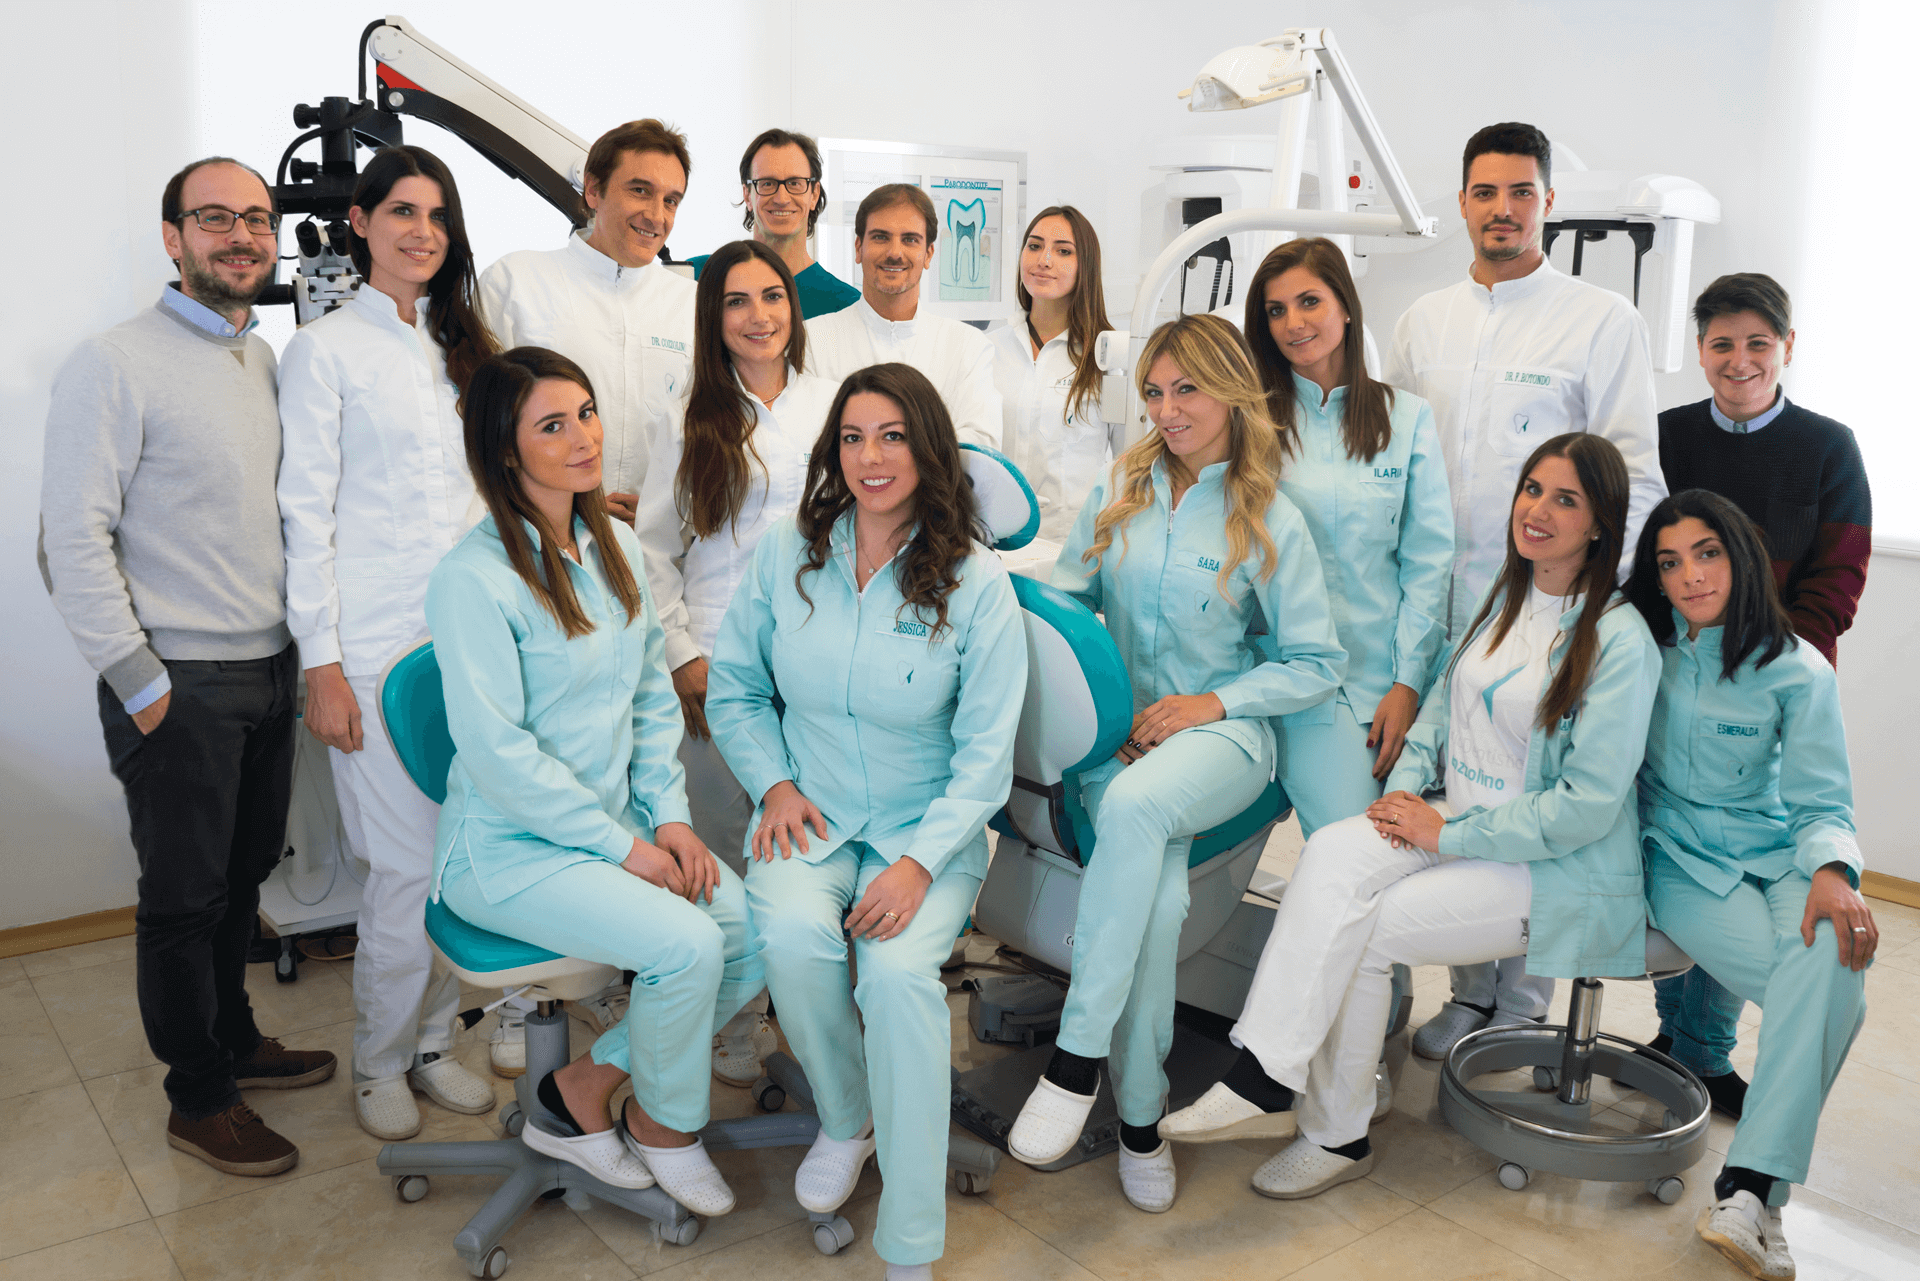 Studio Dentistico Cozzolino Team